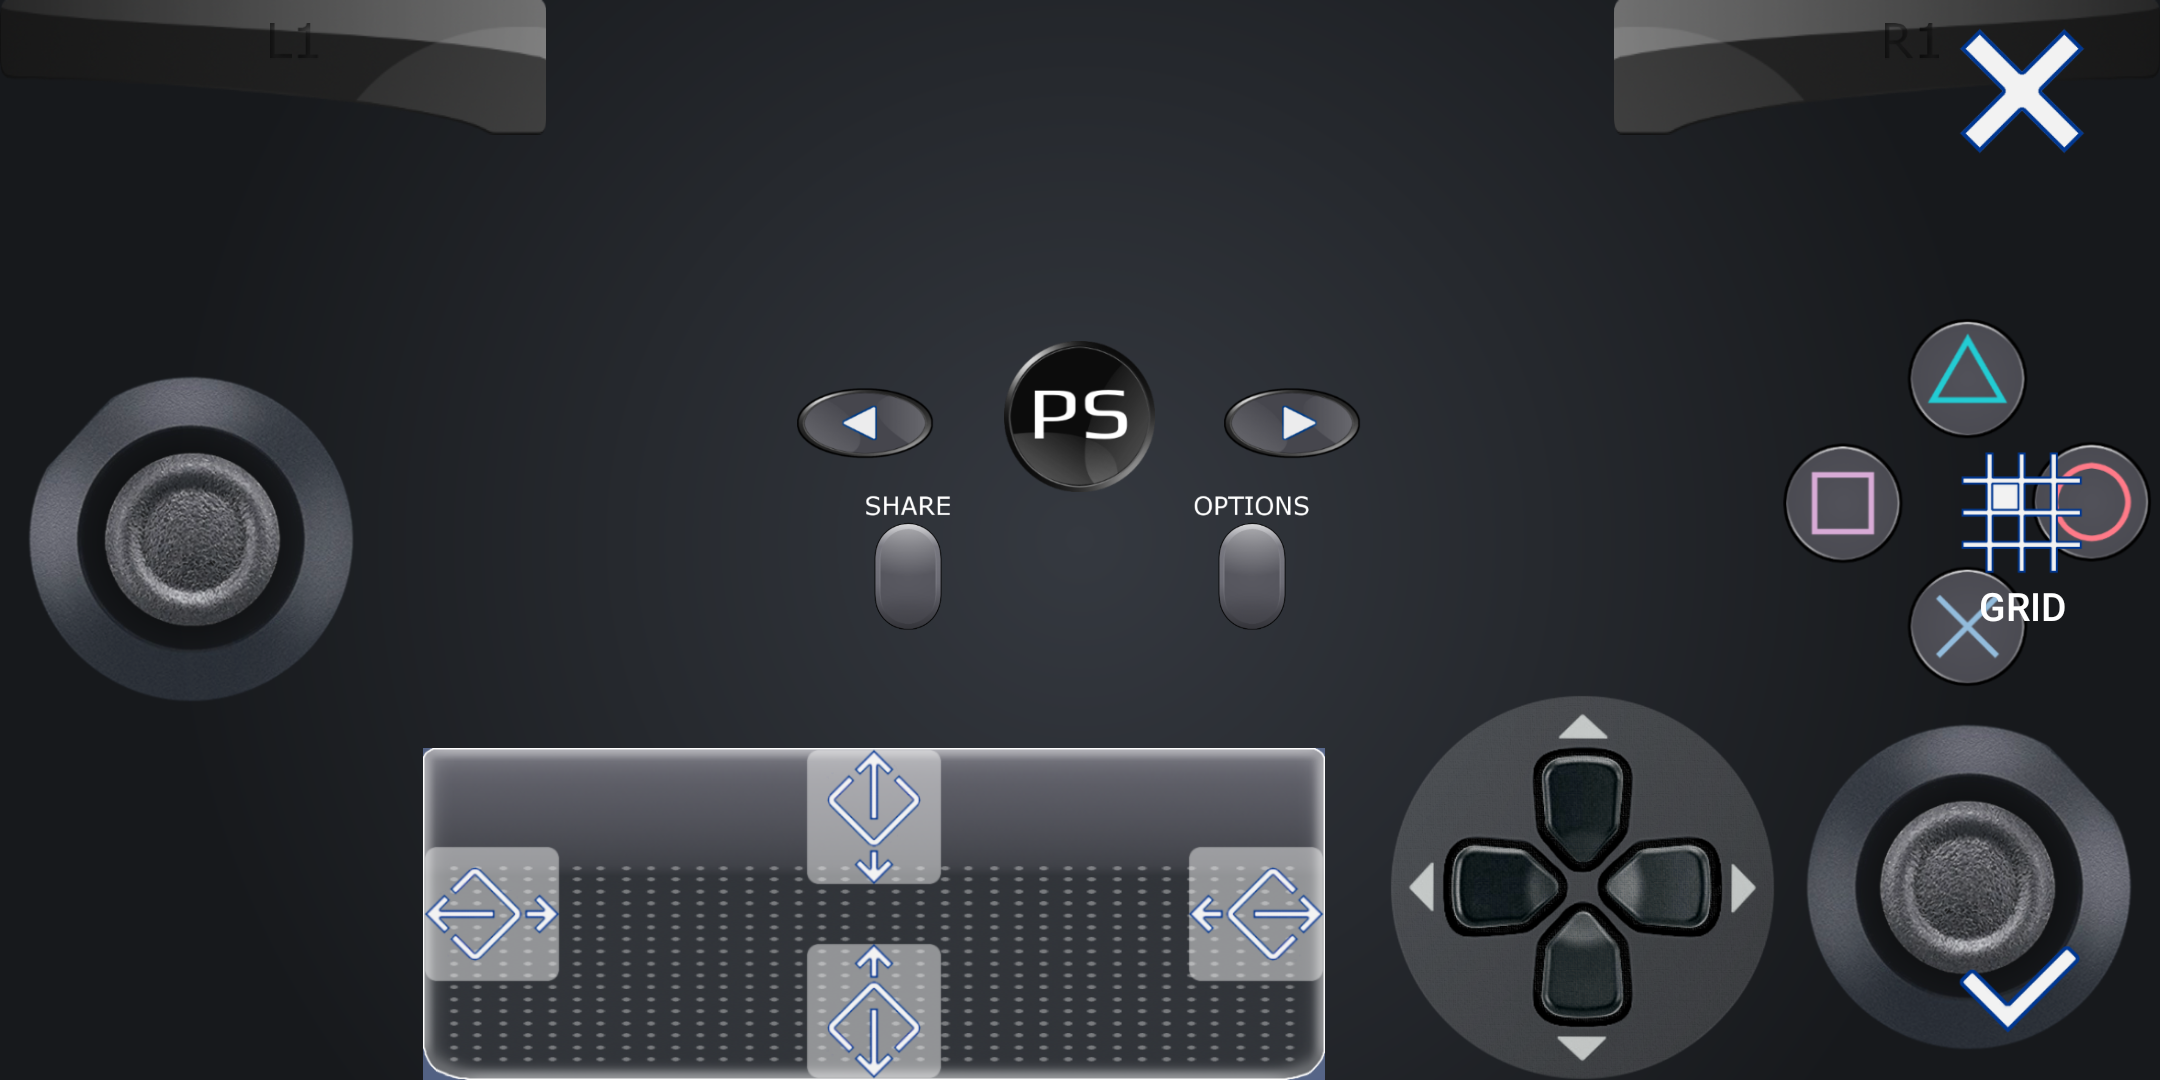 PSPlay: Unlimited PS Remote Play APK 4.4.2 Download for ...